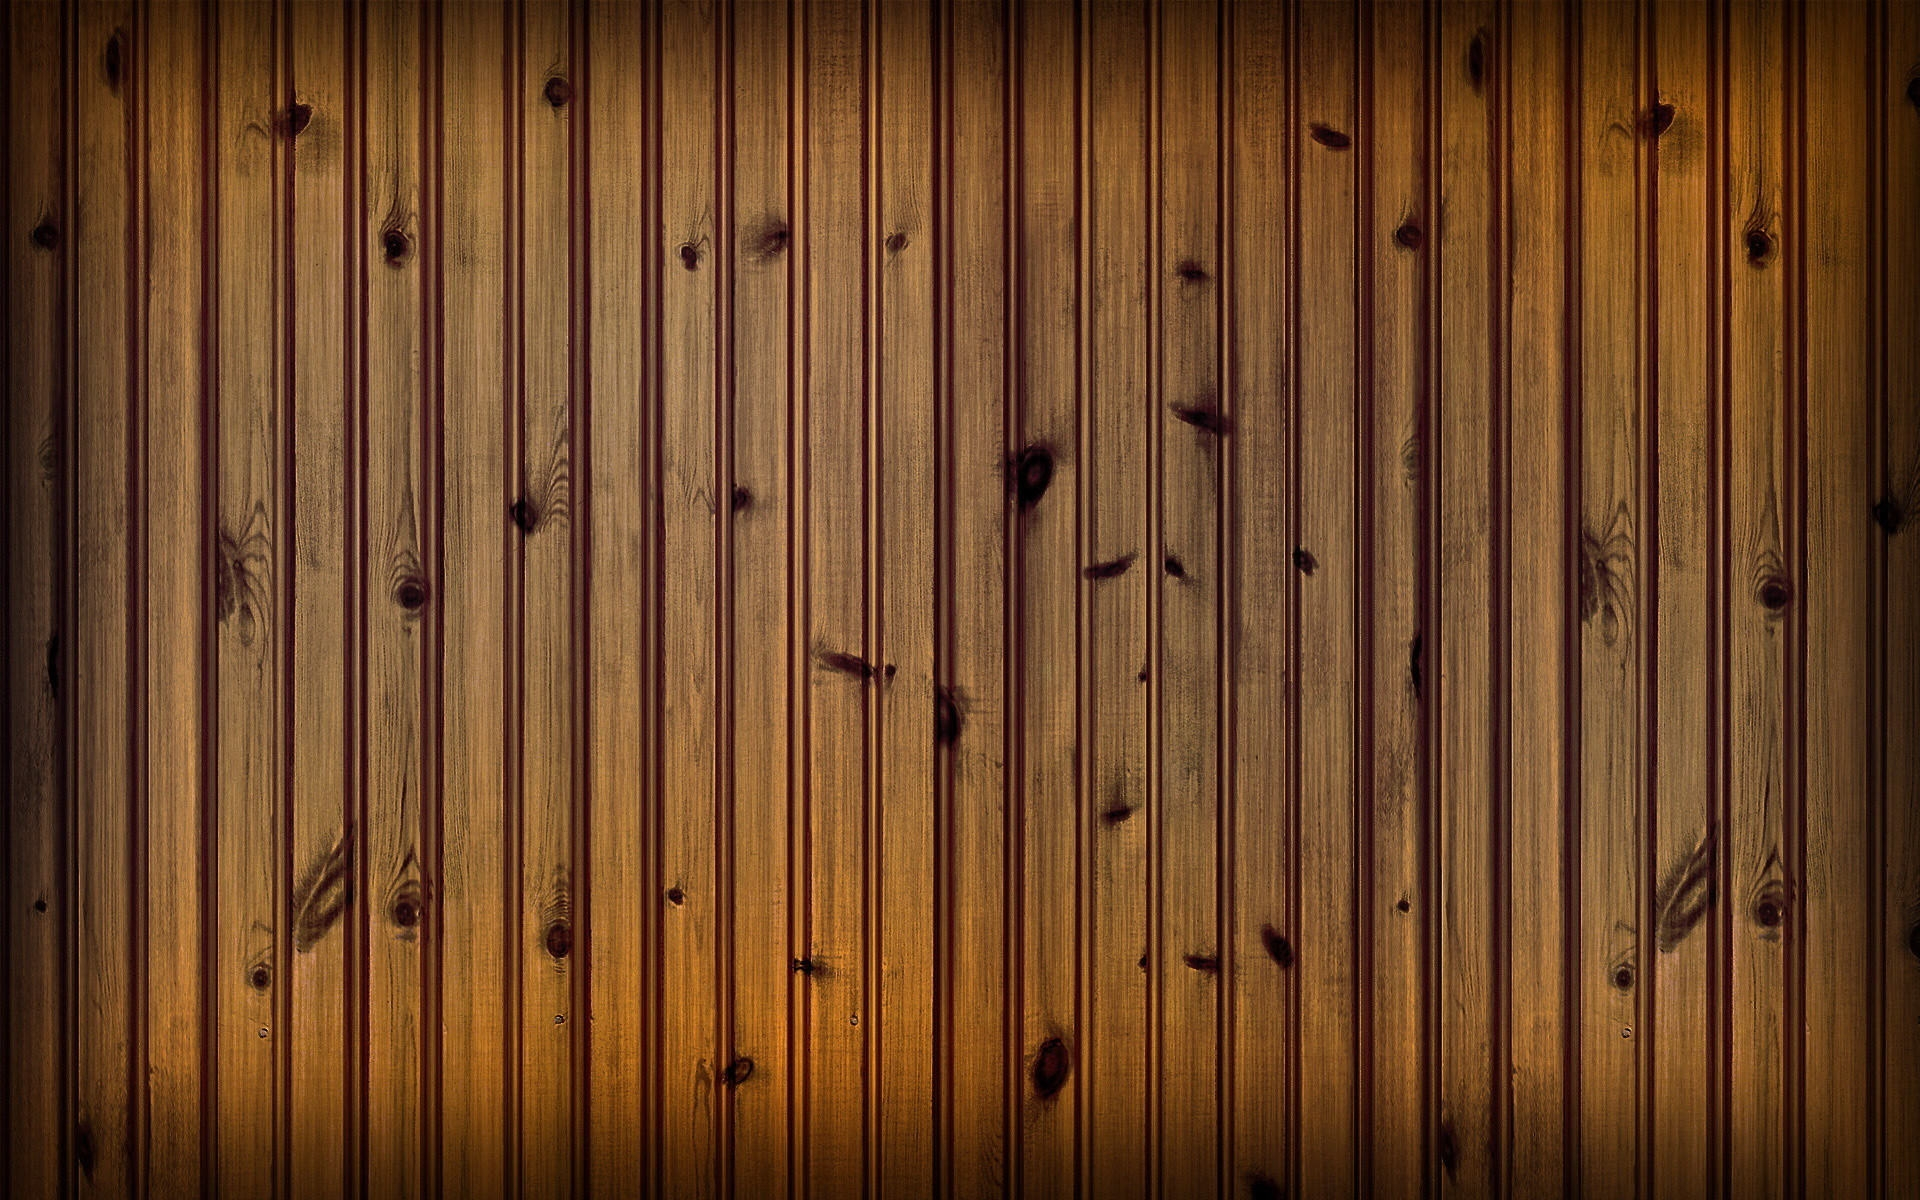 High Quality Wood Wallpaper